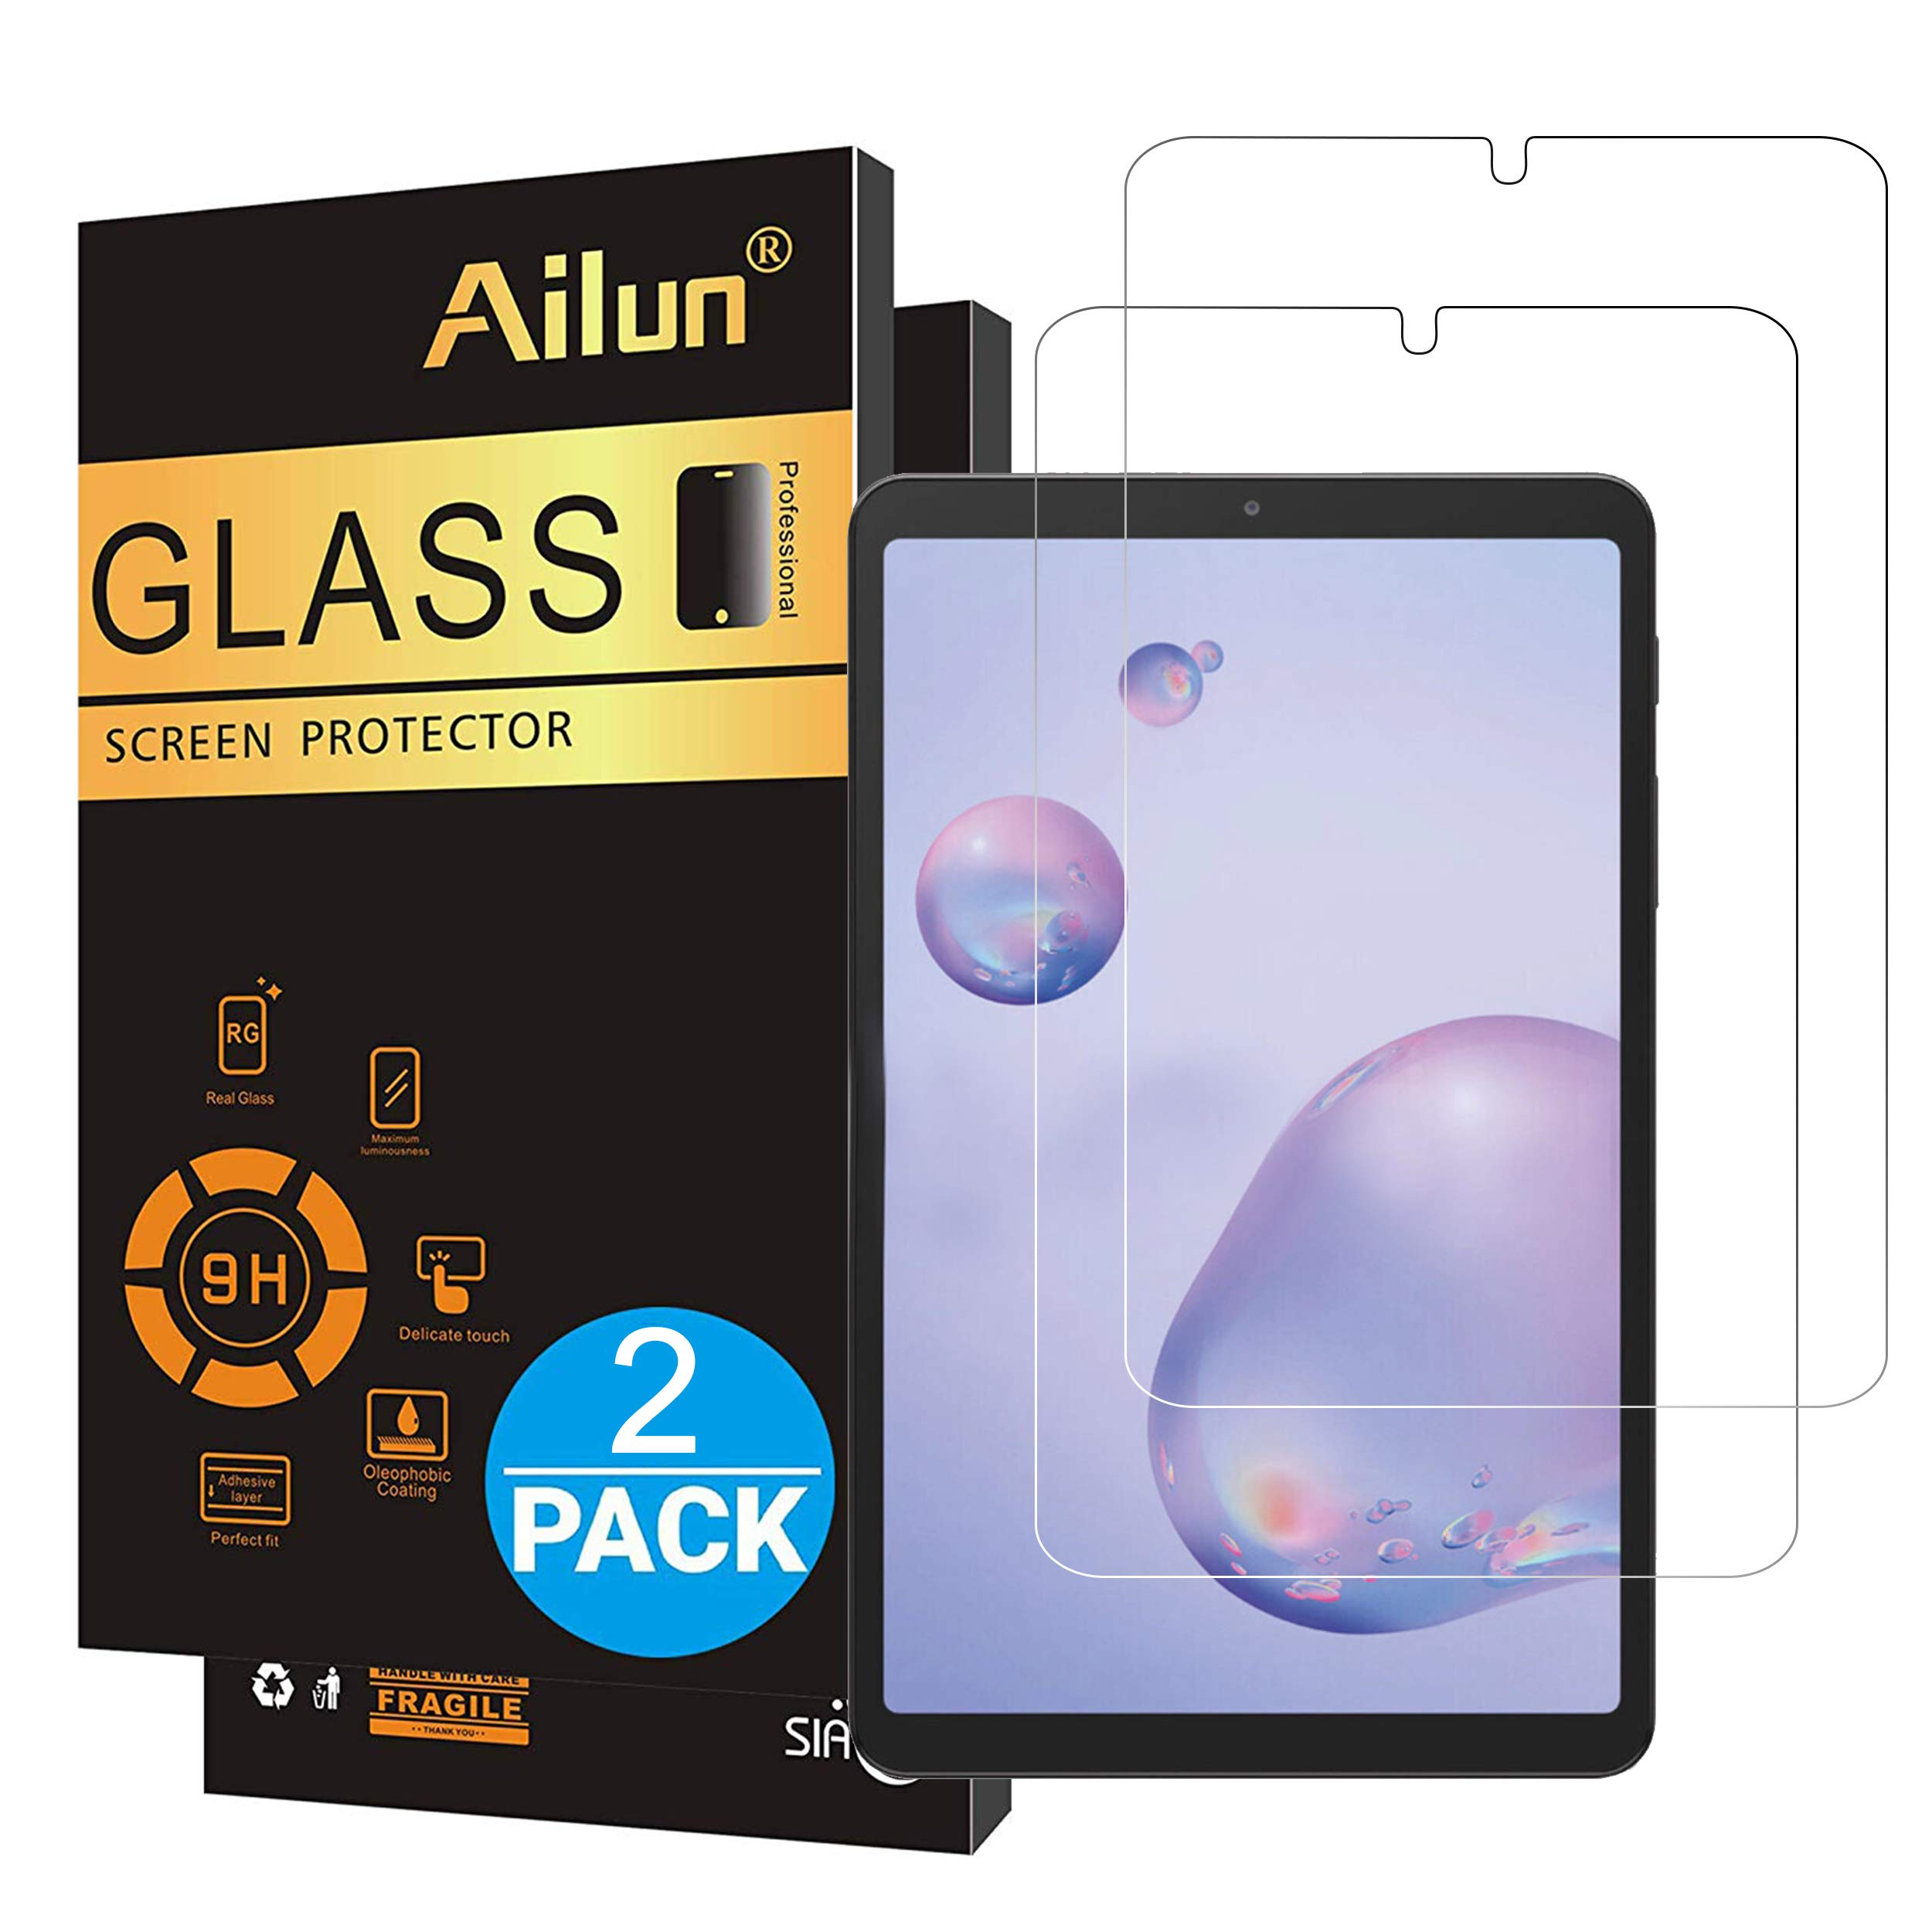 Ailun Screen Protector for Galaxy Tab A 8.4 inch 2020 Release 2Pack Tempered Glass 9H Hardness 2.5D Edge Ultra Clear Anti Scratch Case Friendly